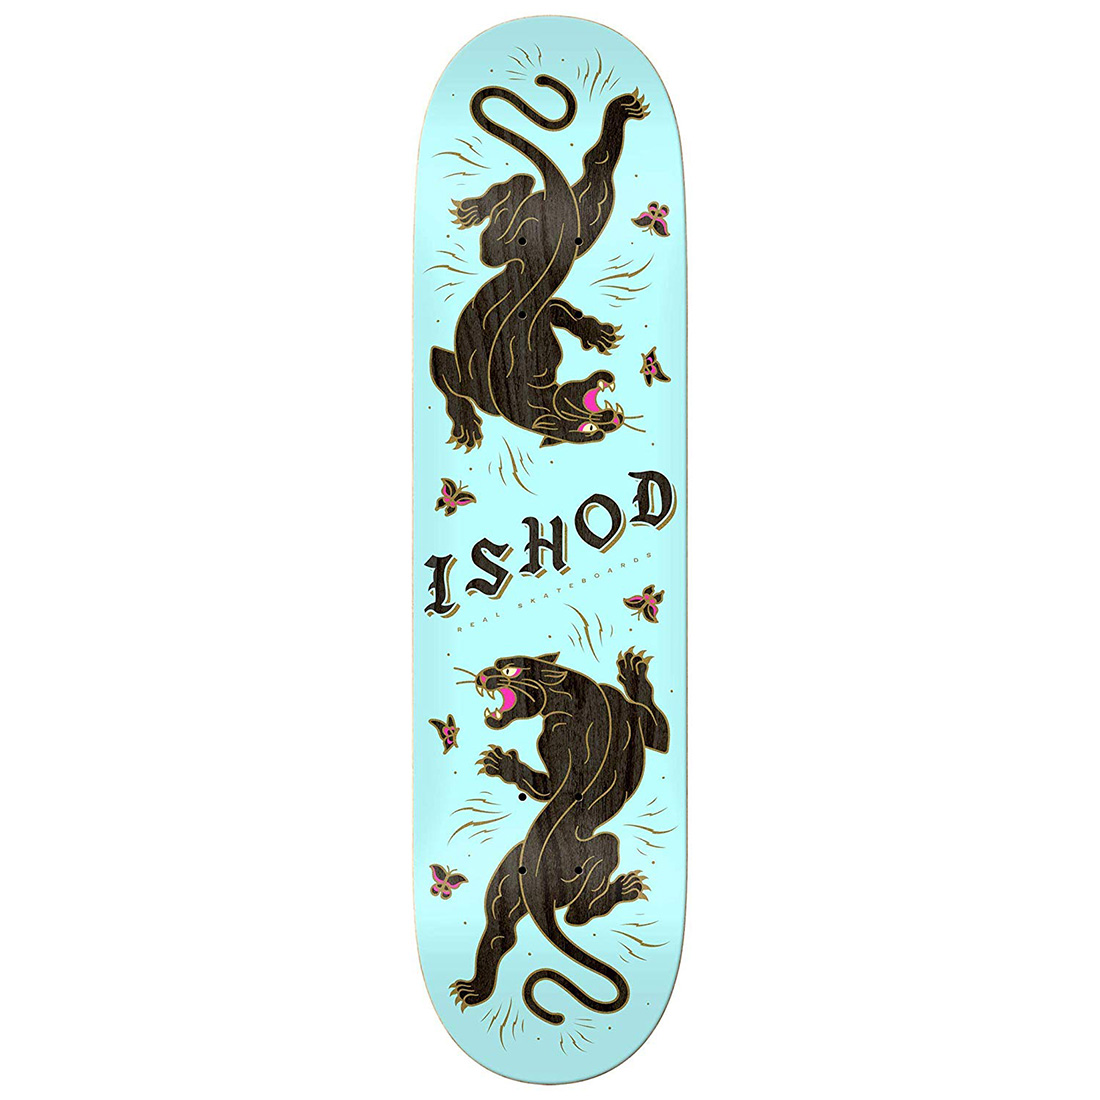 "ДЕКА REAL ISHOD CAT SCRATCH TT 8.25"" 2019"